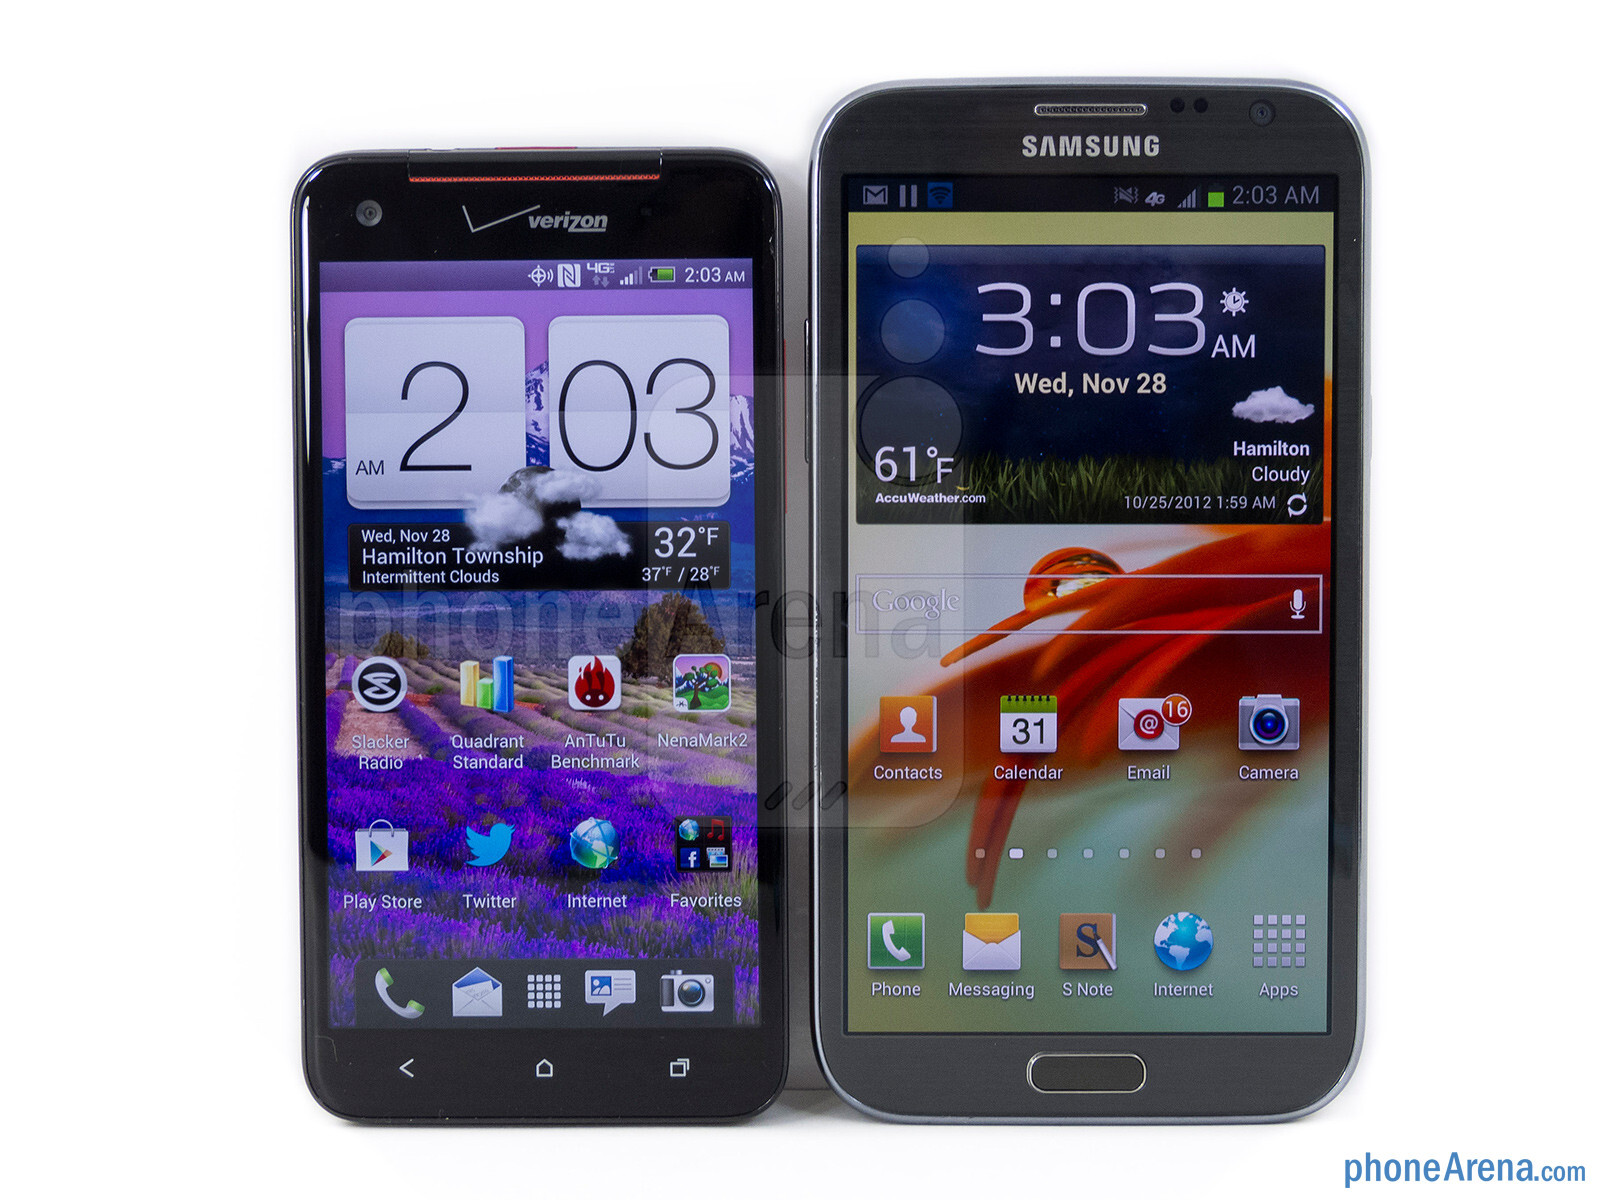 htc droid dna vs samsung galaxy note ii 004